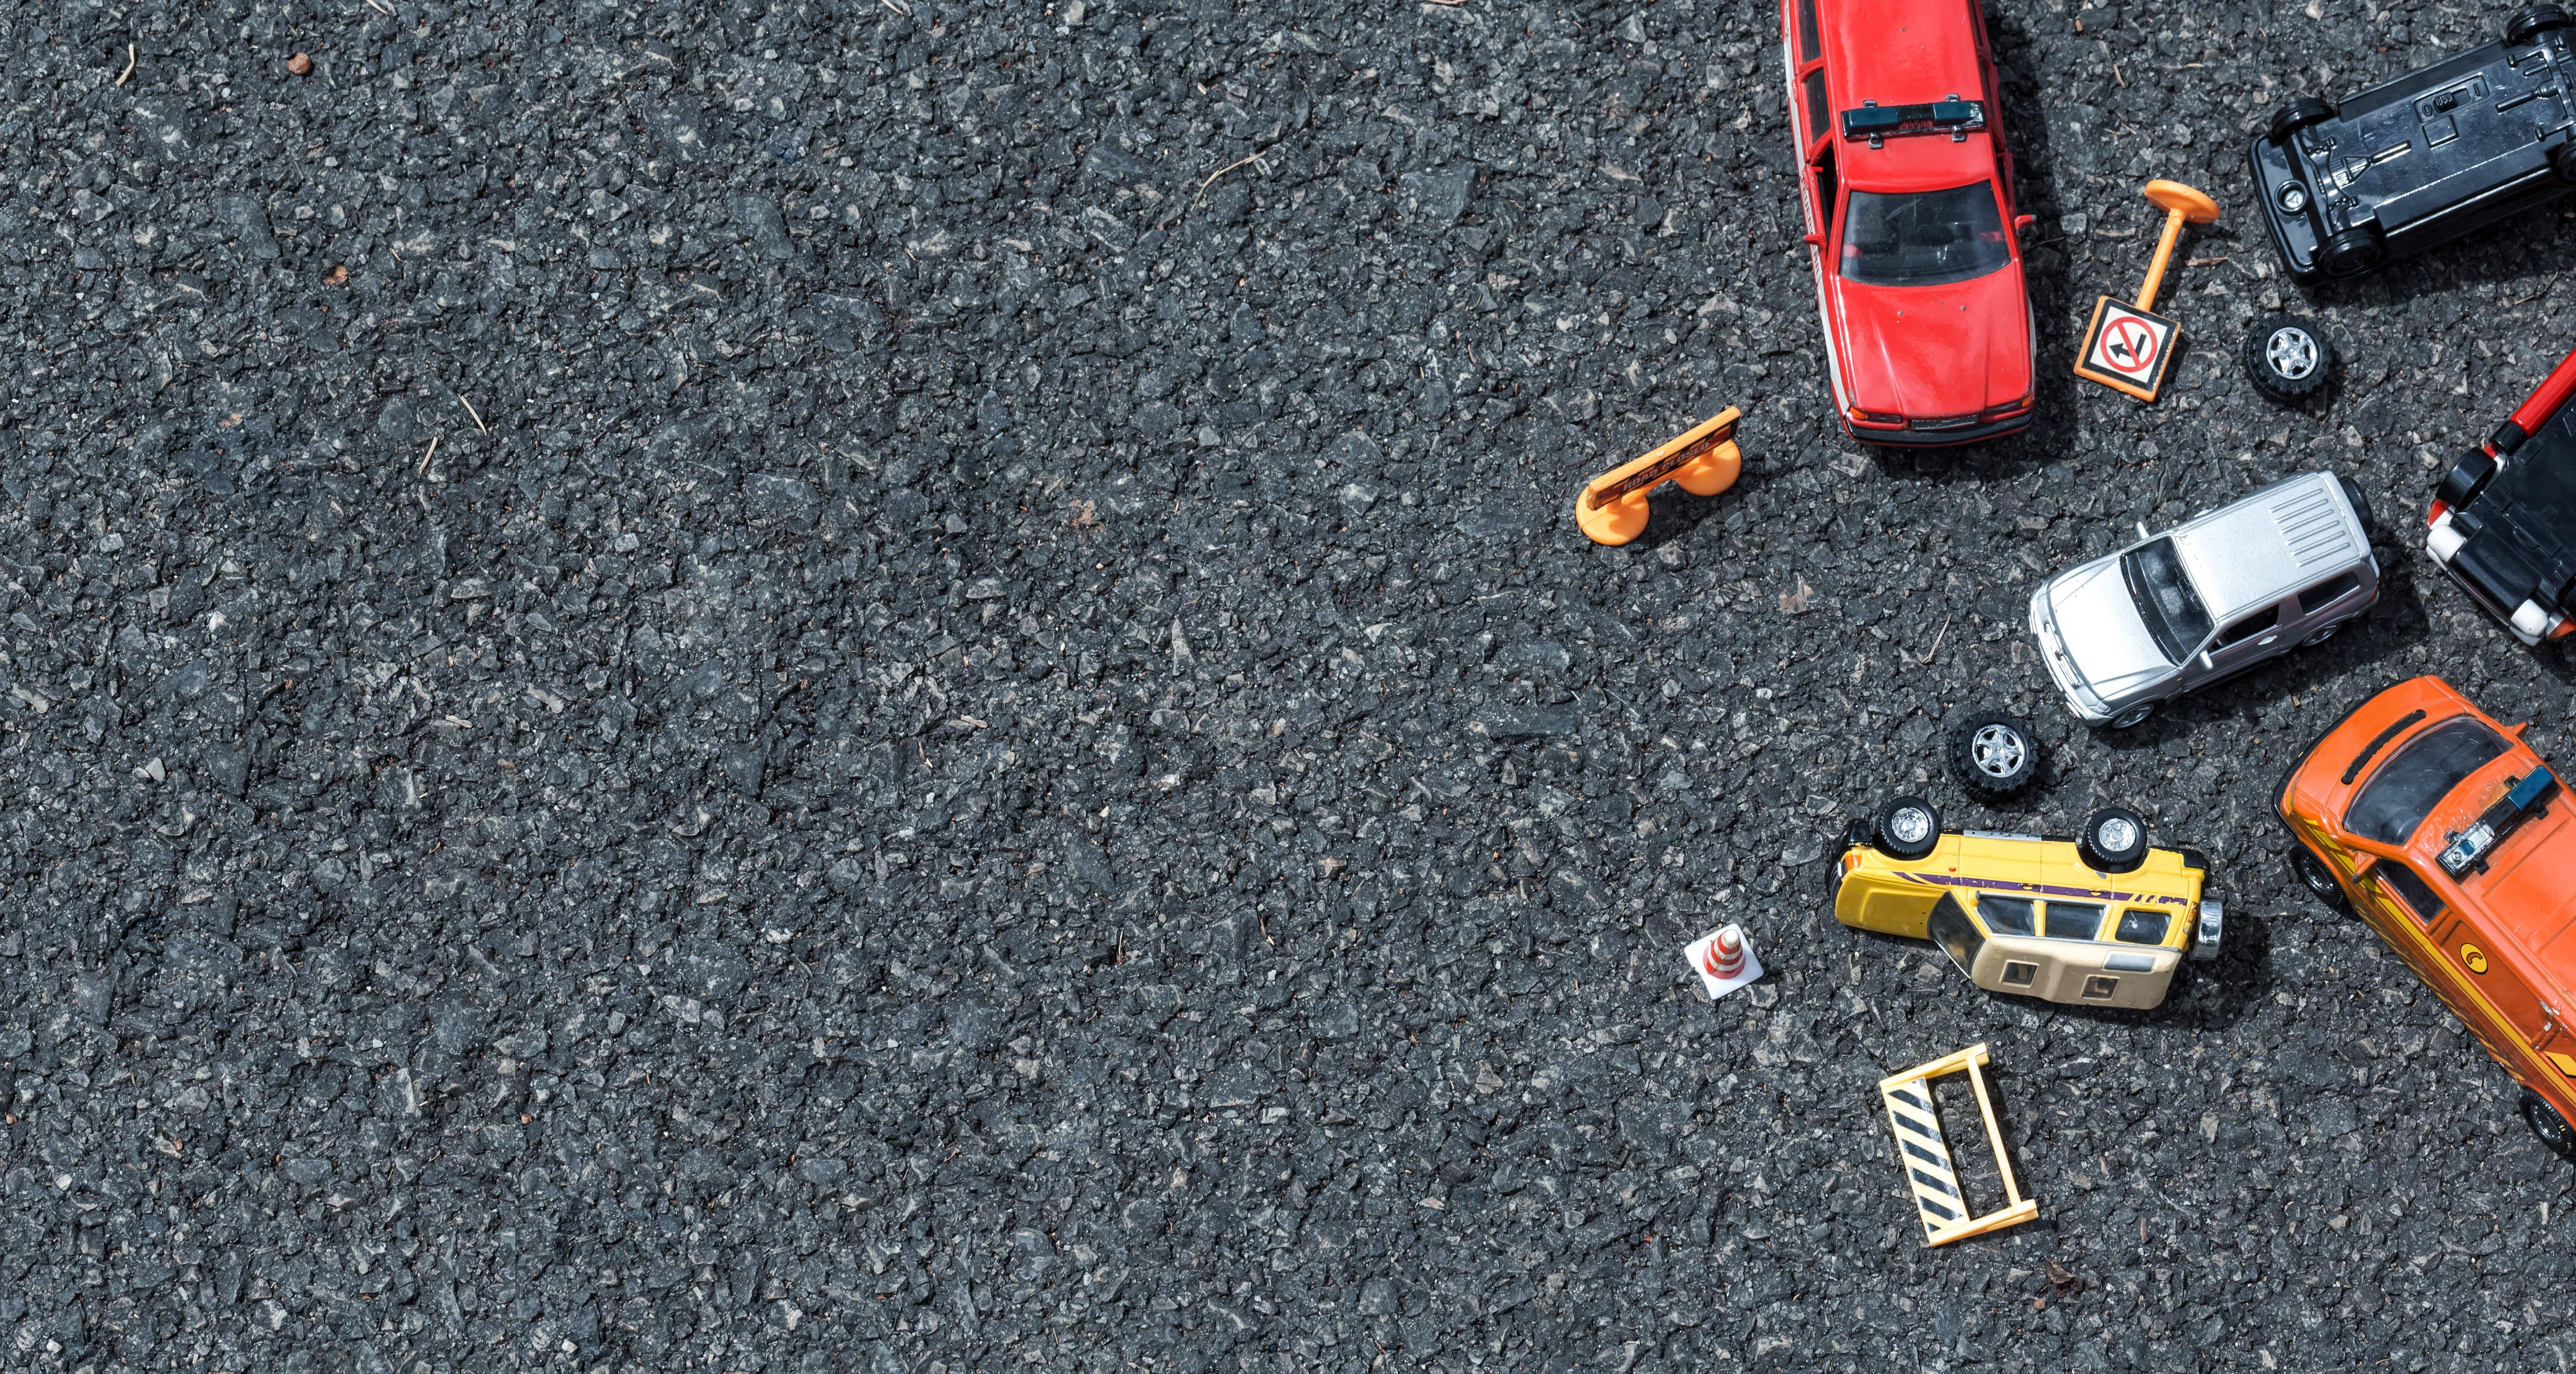 minature cars on street for car accident